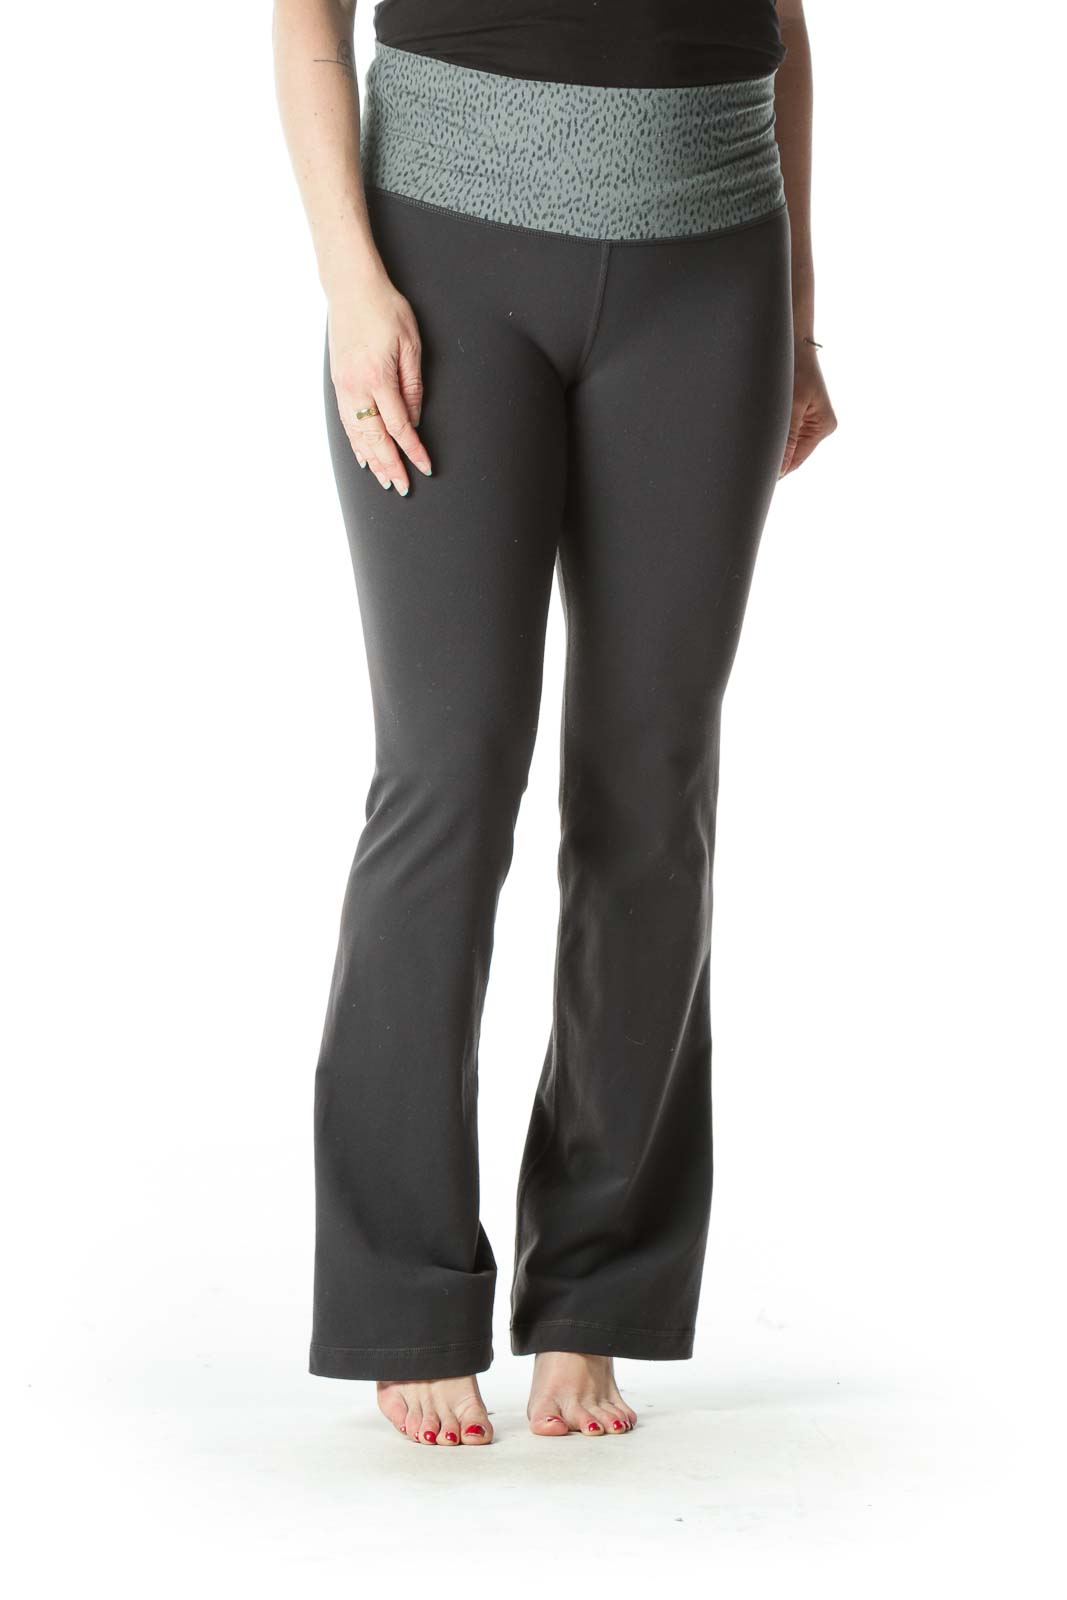 Gray Waist-Patterned Flared Yoga Pants